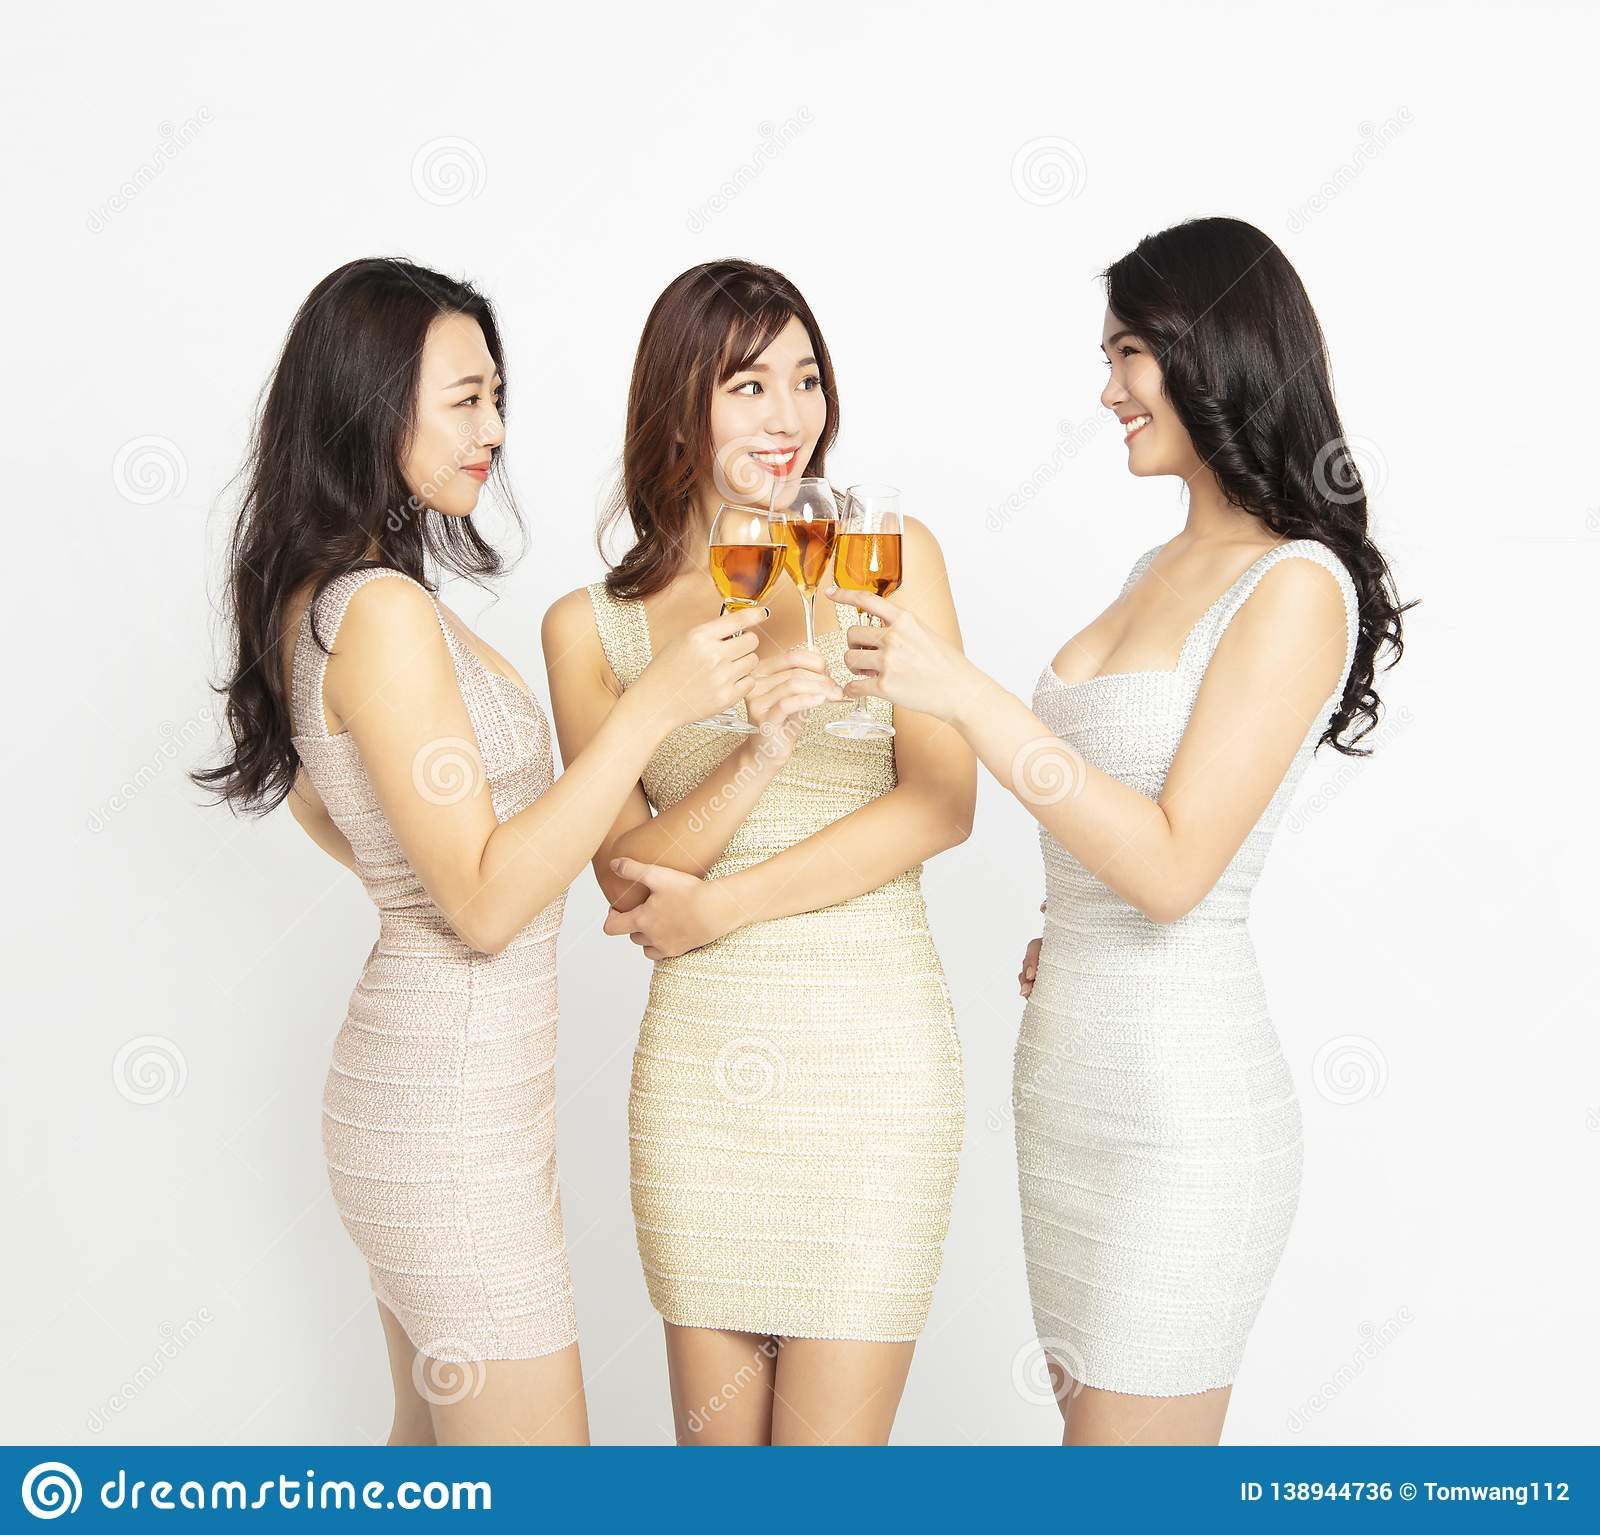 female Friends Make Toast and Celebrate At Party